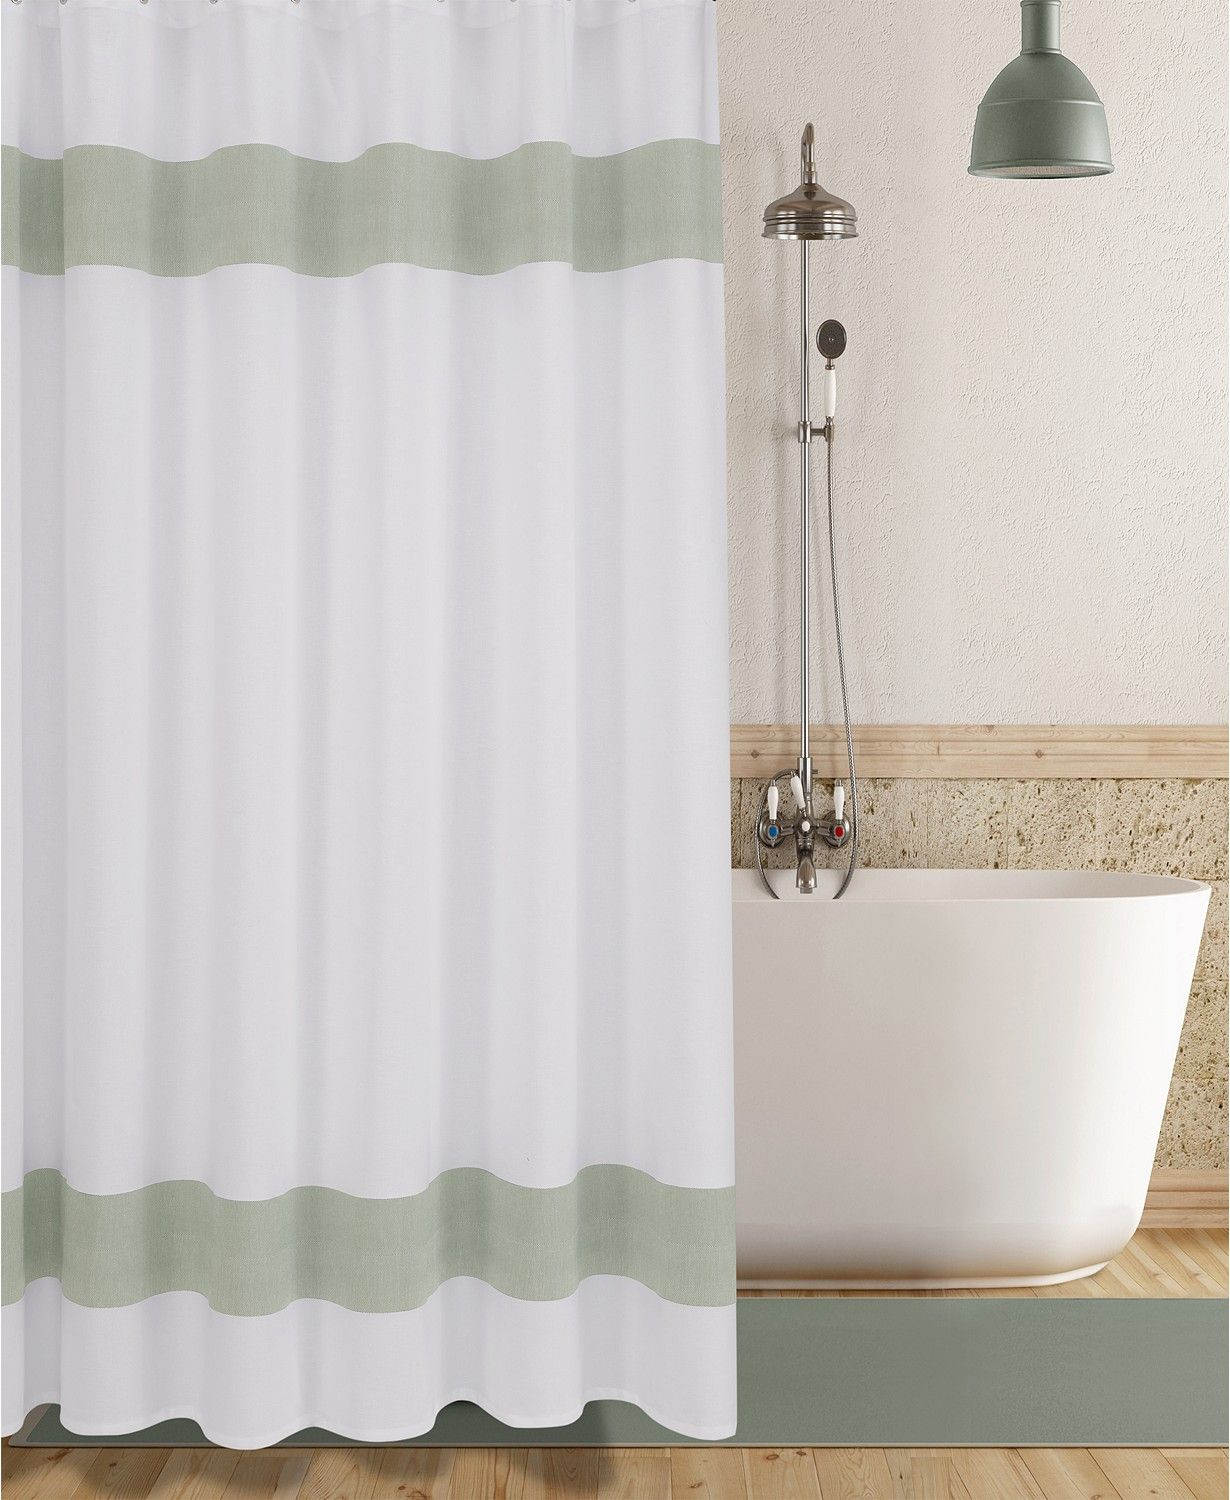 Enchante Home Unique Turkish Cotton Shower Curtain Bedding In 2020 Vinyl Shower Curtains Colorful Curtains Bars For Home